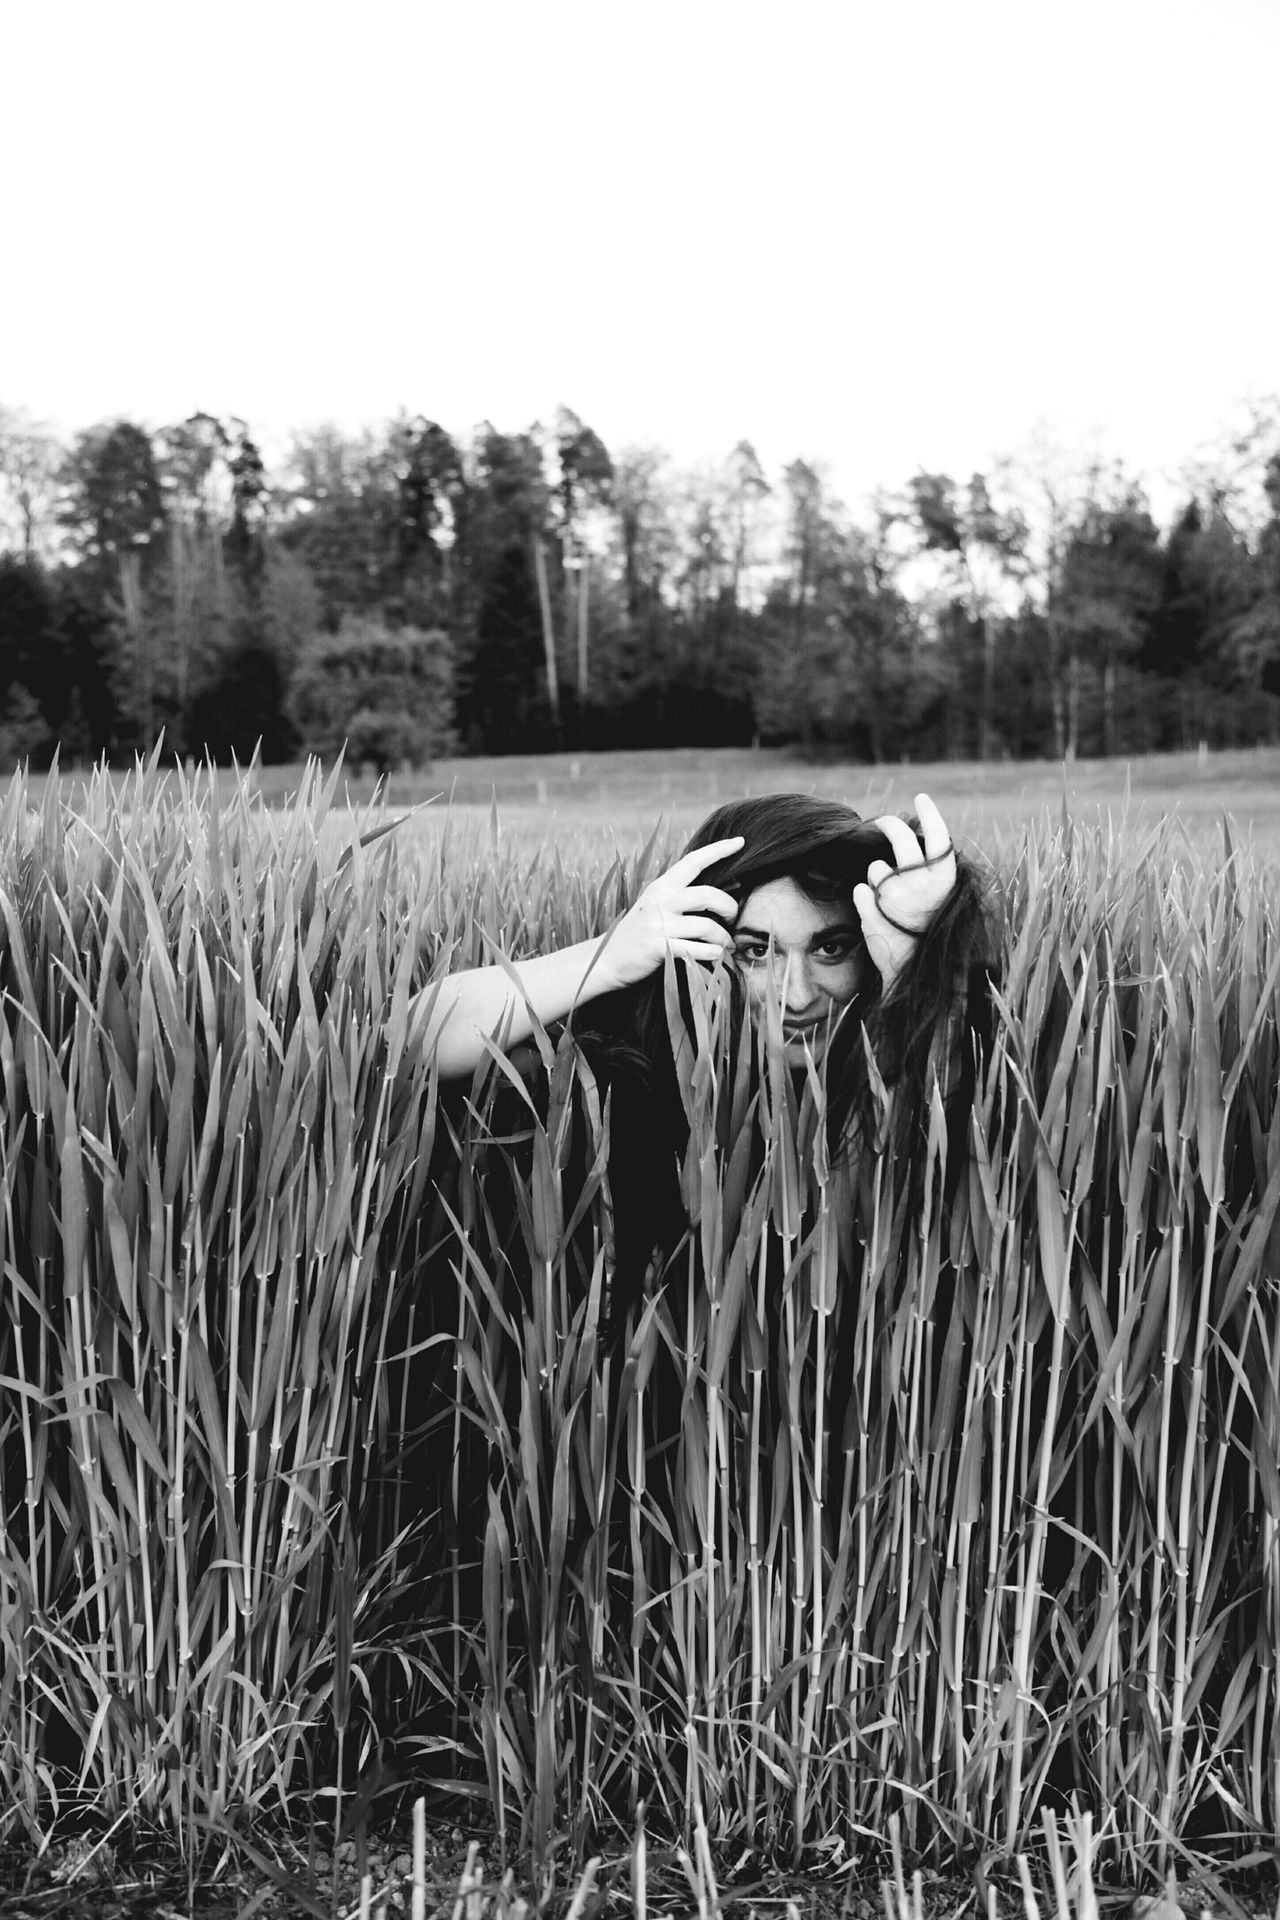 Woman Portrait Field People Growth Outdoors Real People One Woman Only Grass Tree Black & White Black And White Blackandwhite Creative Rare View Long Hair Woman Portrait Nature Hair Looking Hiding Break The Mold TCPM Art Is Everywhere The Portraitist - 2017 EyeEm Awards BYOPaper! Live For The Story